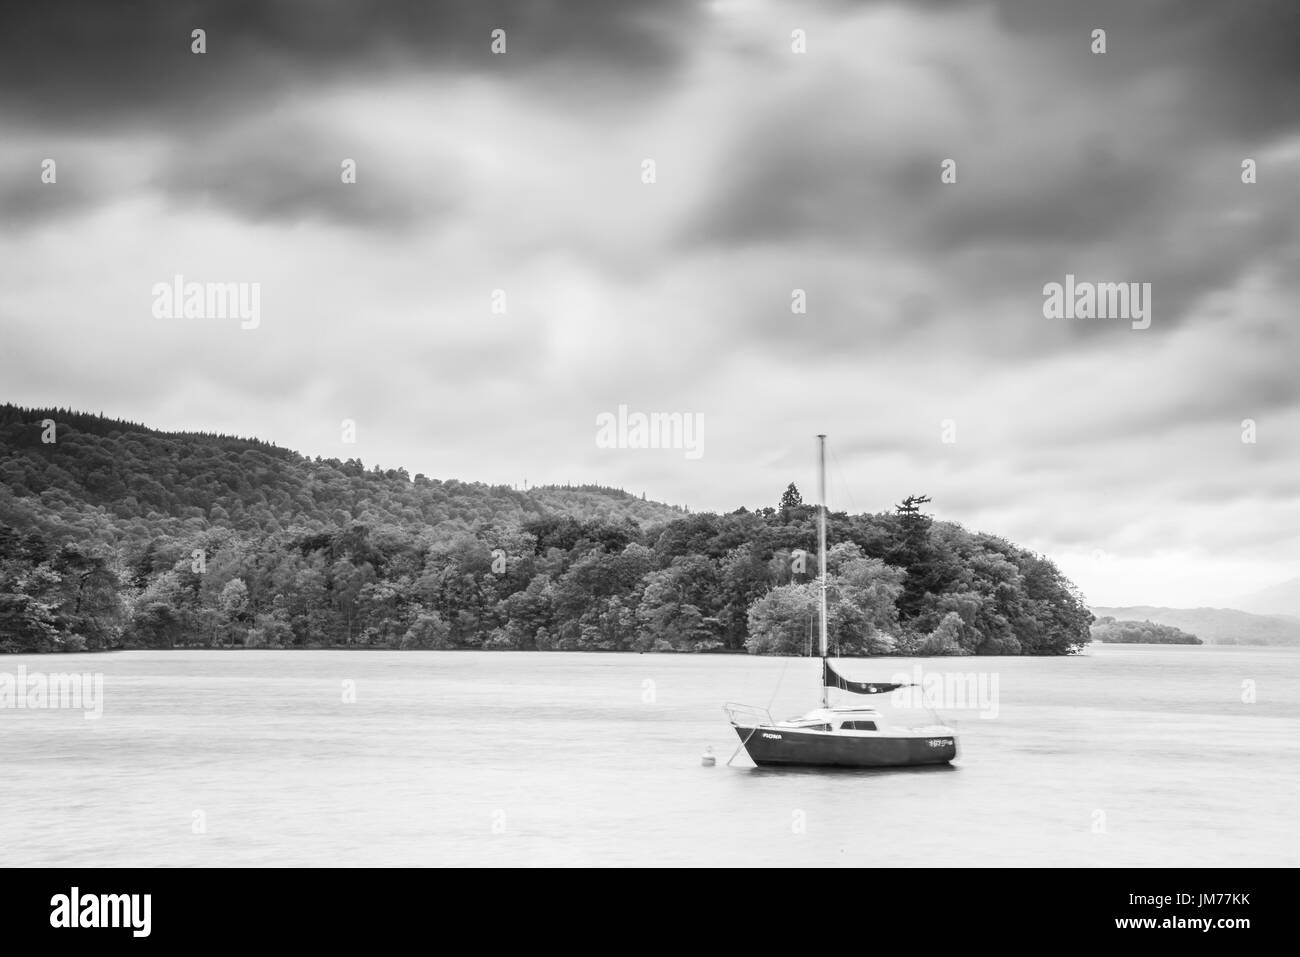 A sailing boat in a calming lake as storm is approaching. UK - Stock Image